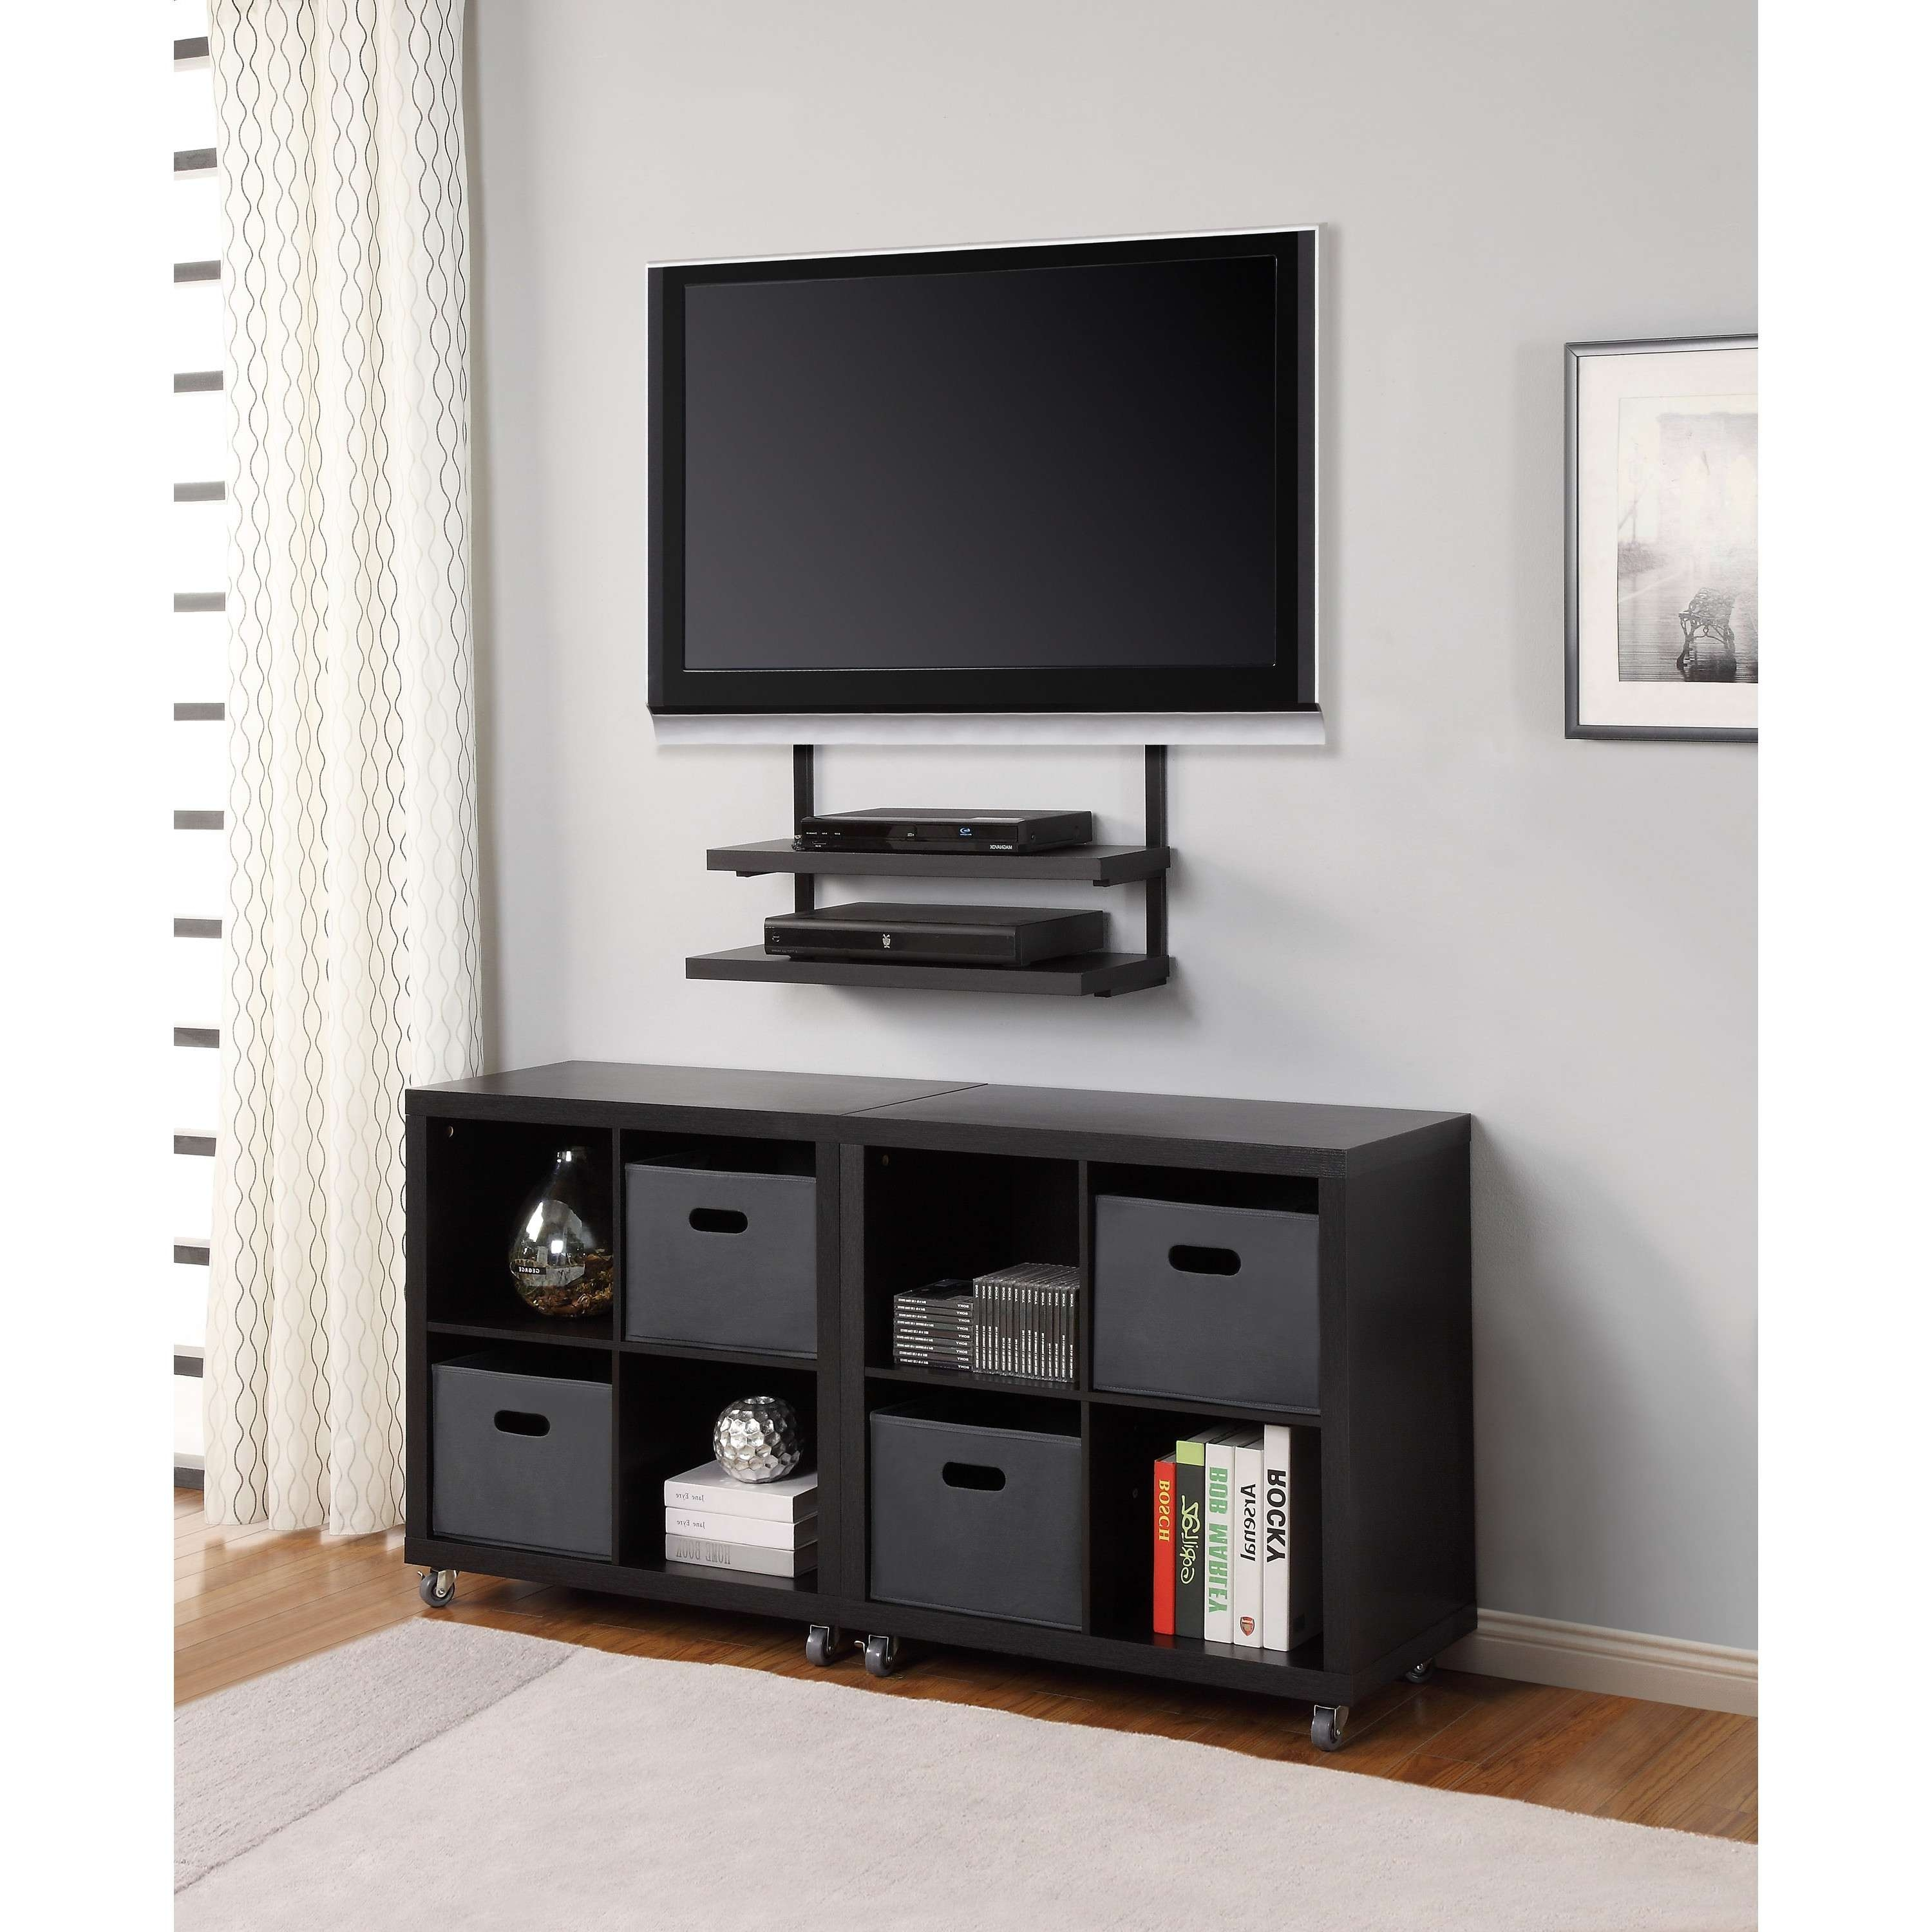 Tv Wall Mount Cabinet – Surripui Inside Wall Mounted Tv Stands For Flat Screens (View 7 of 15)